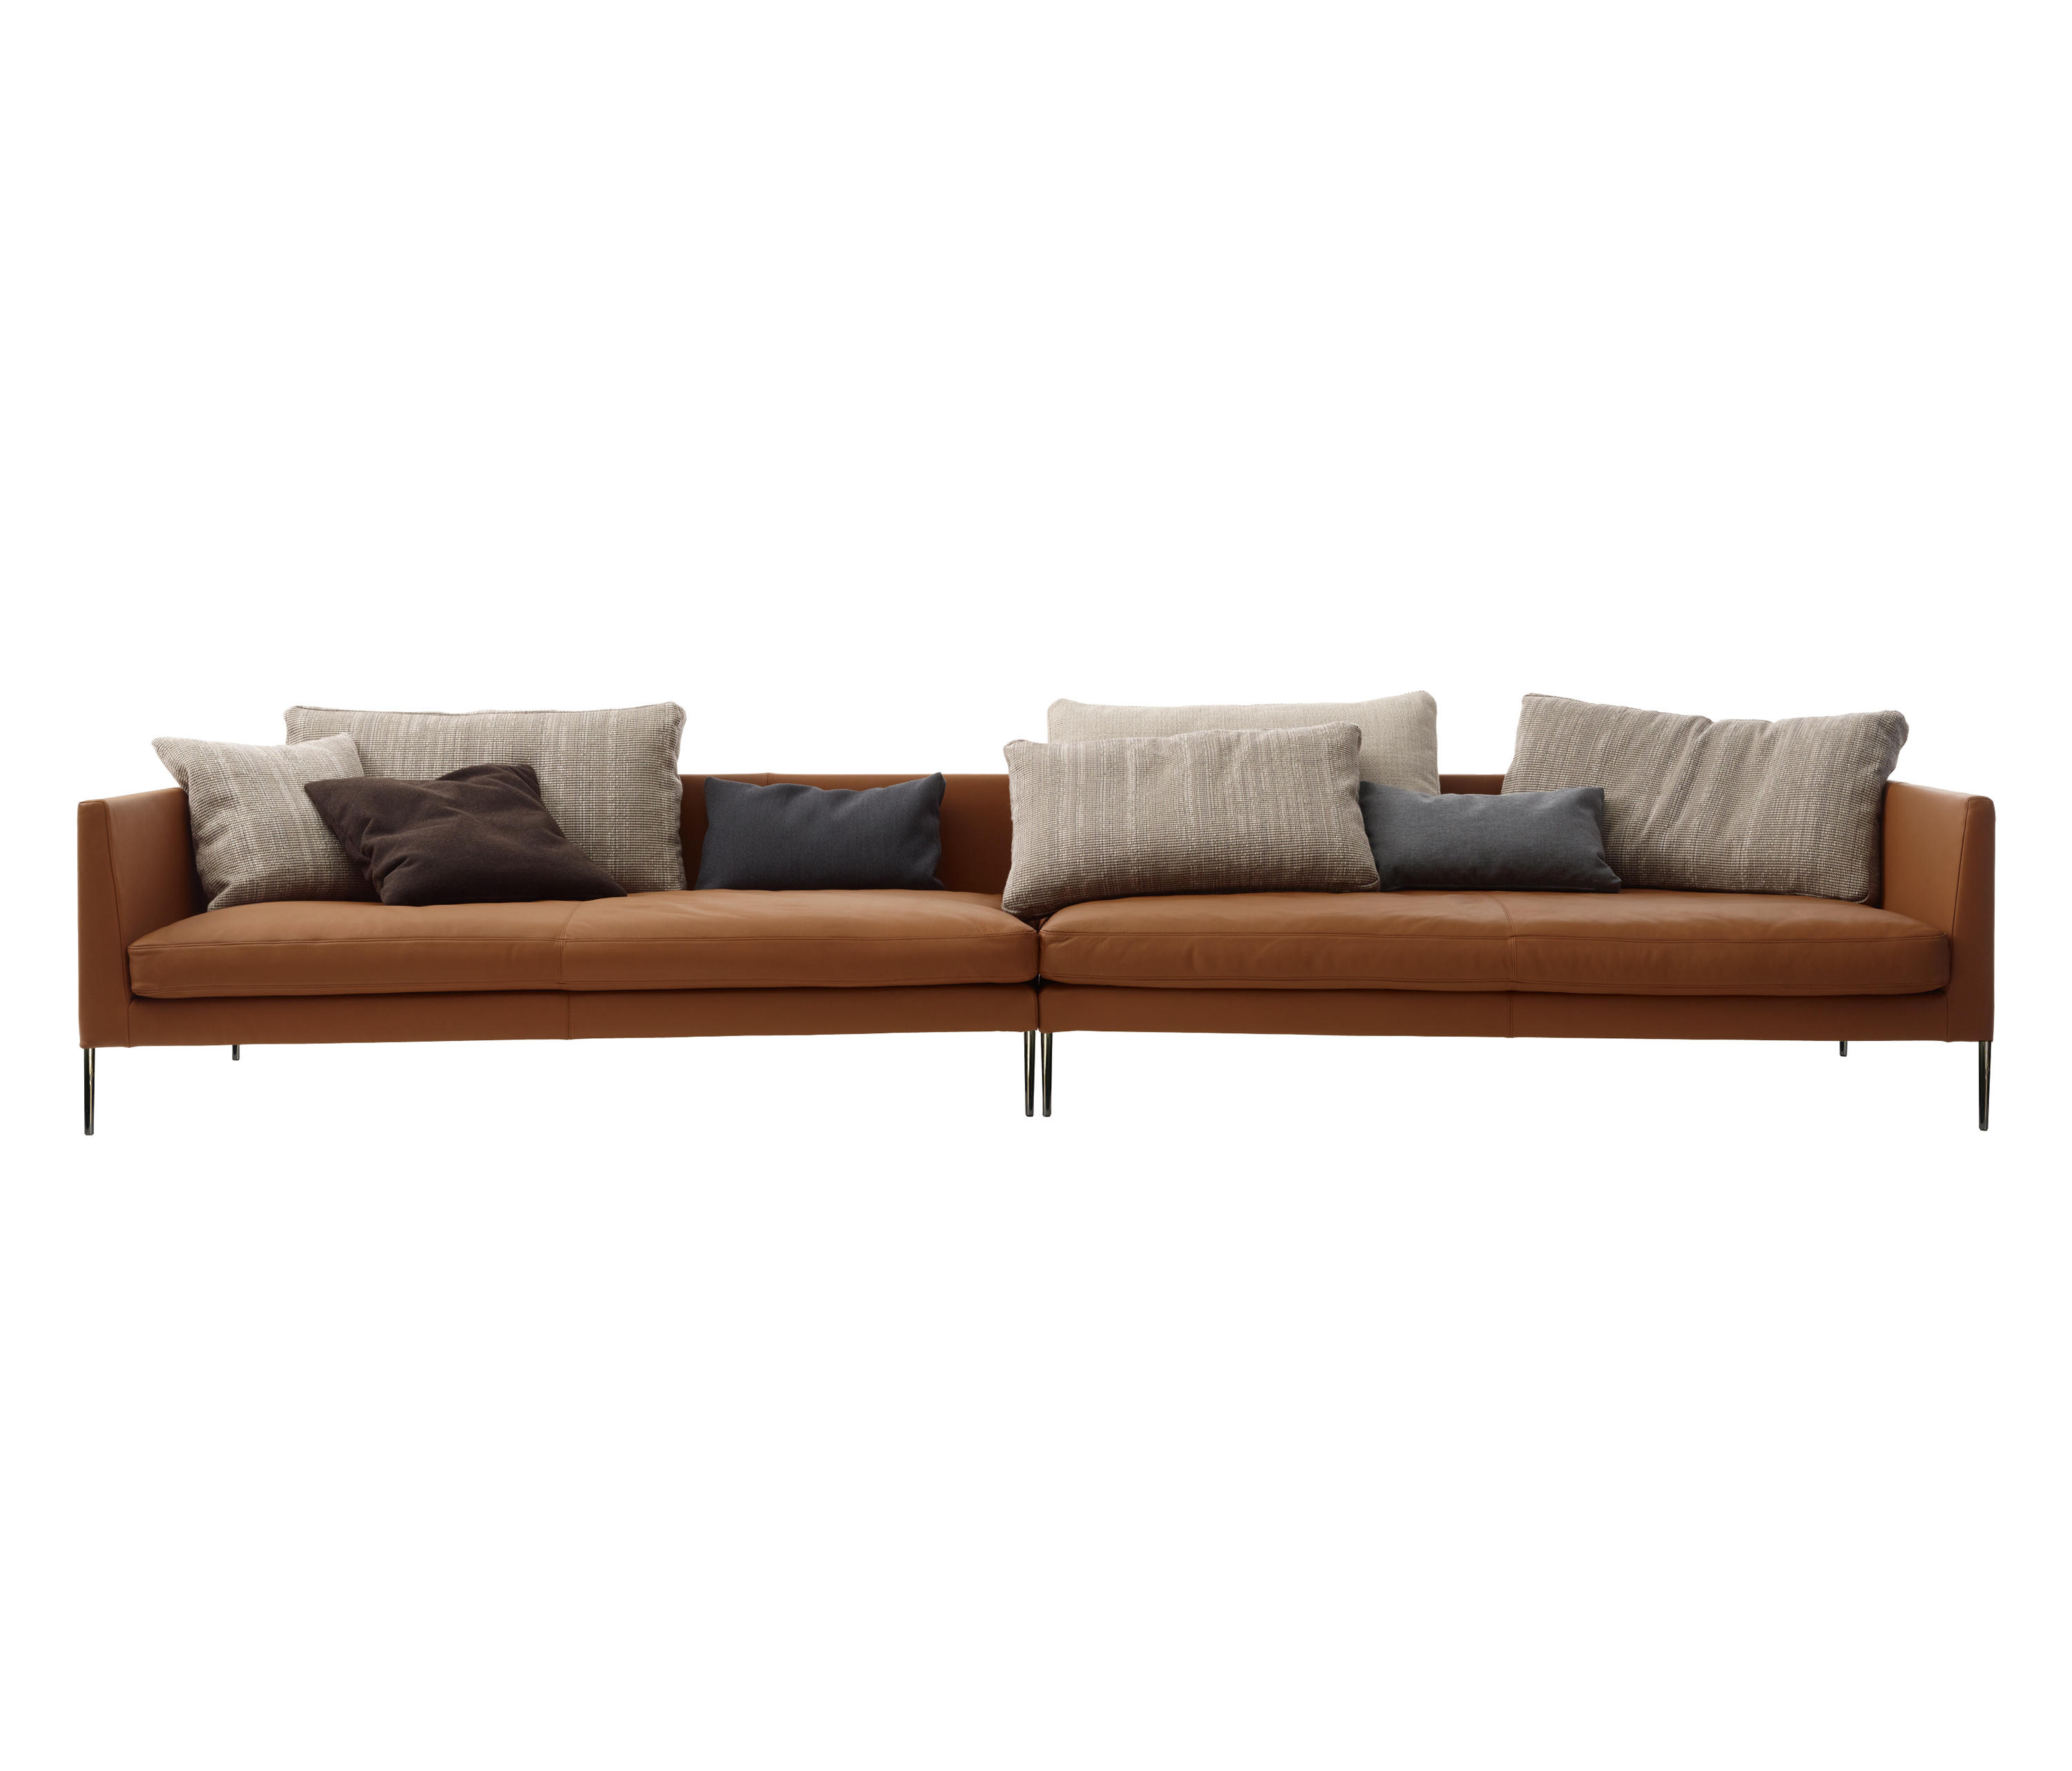 Cor Sofa Mell Lounge Sectional Sofa By Cor Design Jehs Laub Thesofa